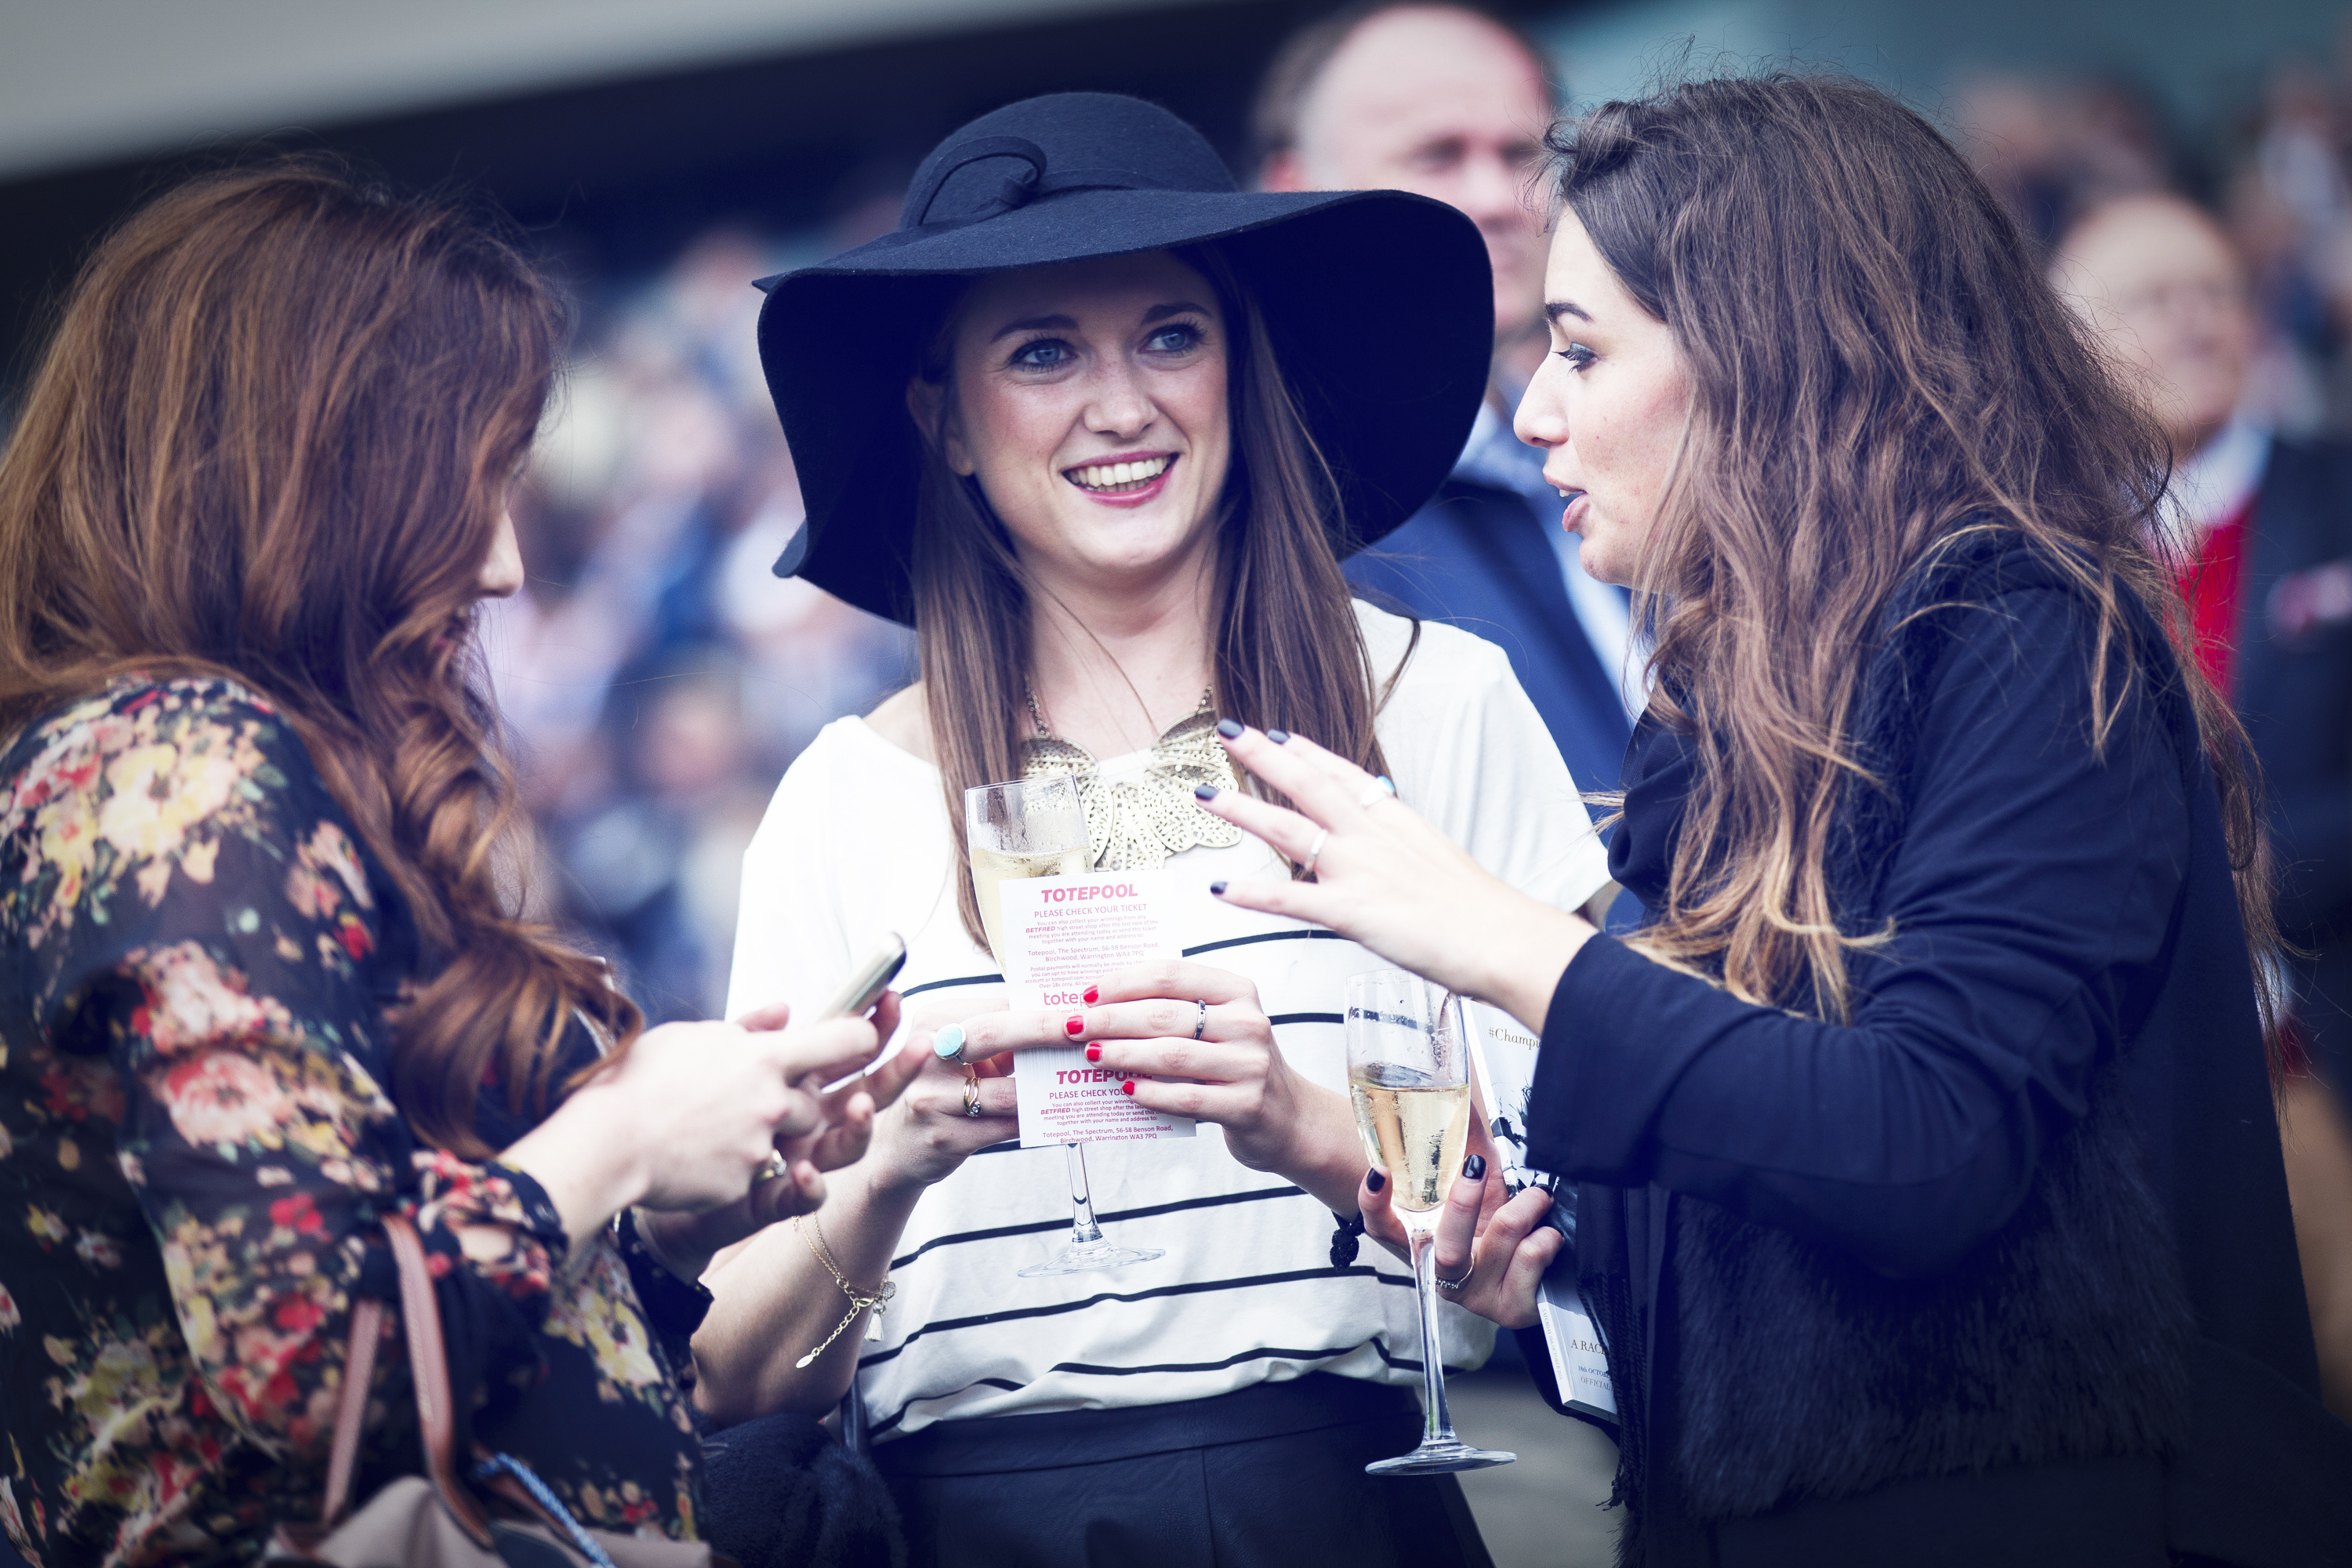 The Crowd watch on at QIPCO British Champions Day at Ascot Racecourse in October